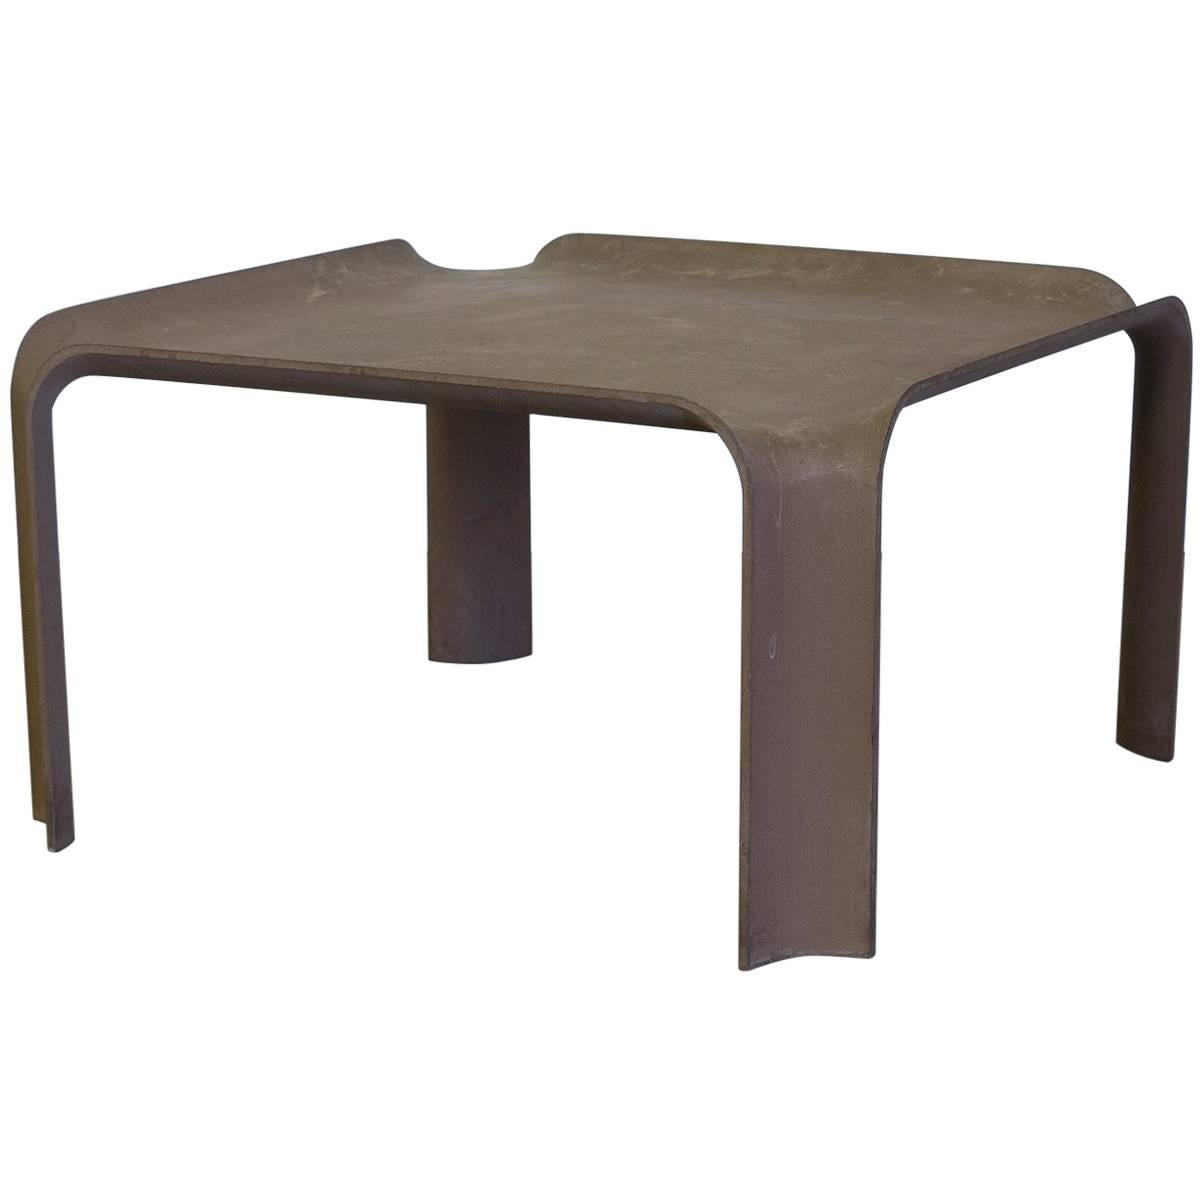 Superieur 1967, Pierre Paulin, Early More Elegant Side Table Model 877 In Chocolate  Brown For